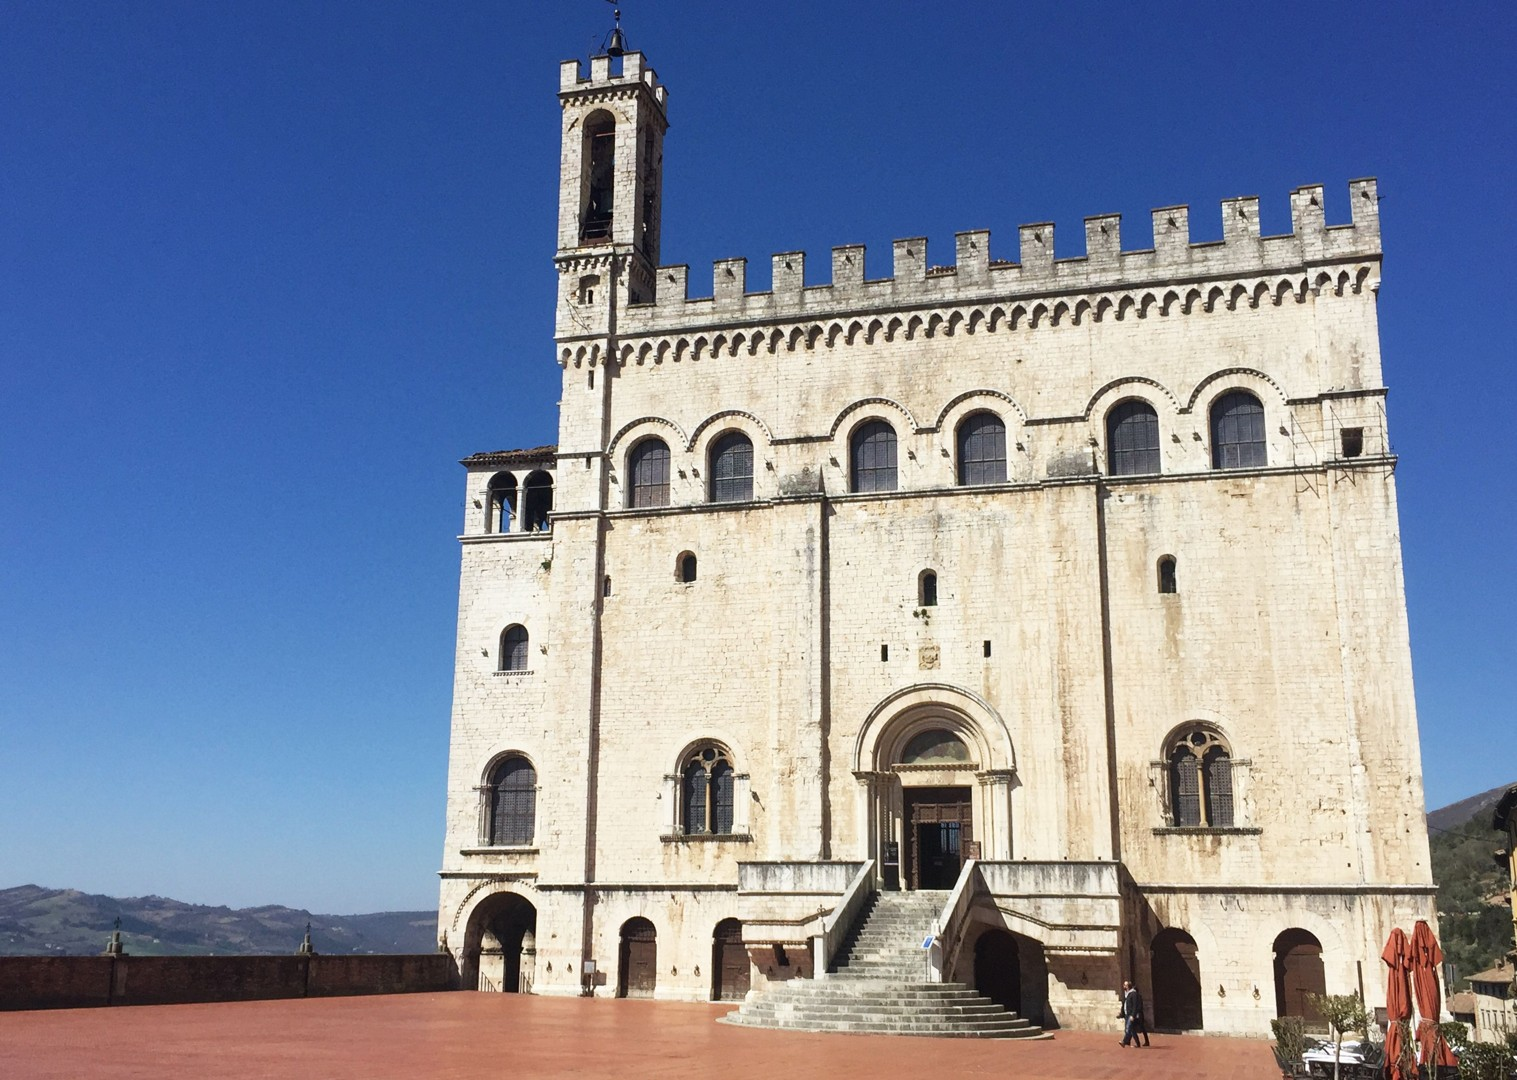 san-francesco-di-assisi-self-guided-leisure-cycling-holiday-in-italy.JPG - Italy - Green Valley of Umbria - Self-Guided Leisure Cycling Holiday - Leisure Cycling